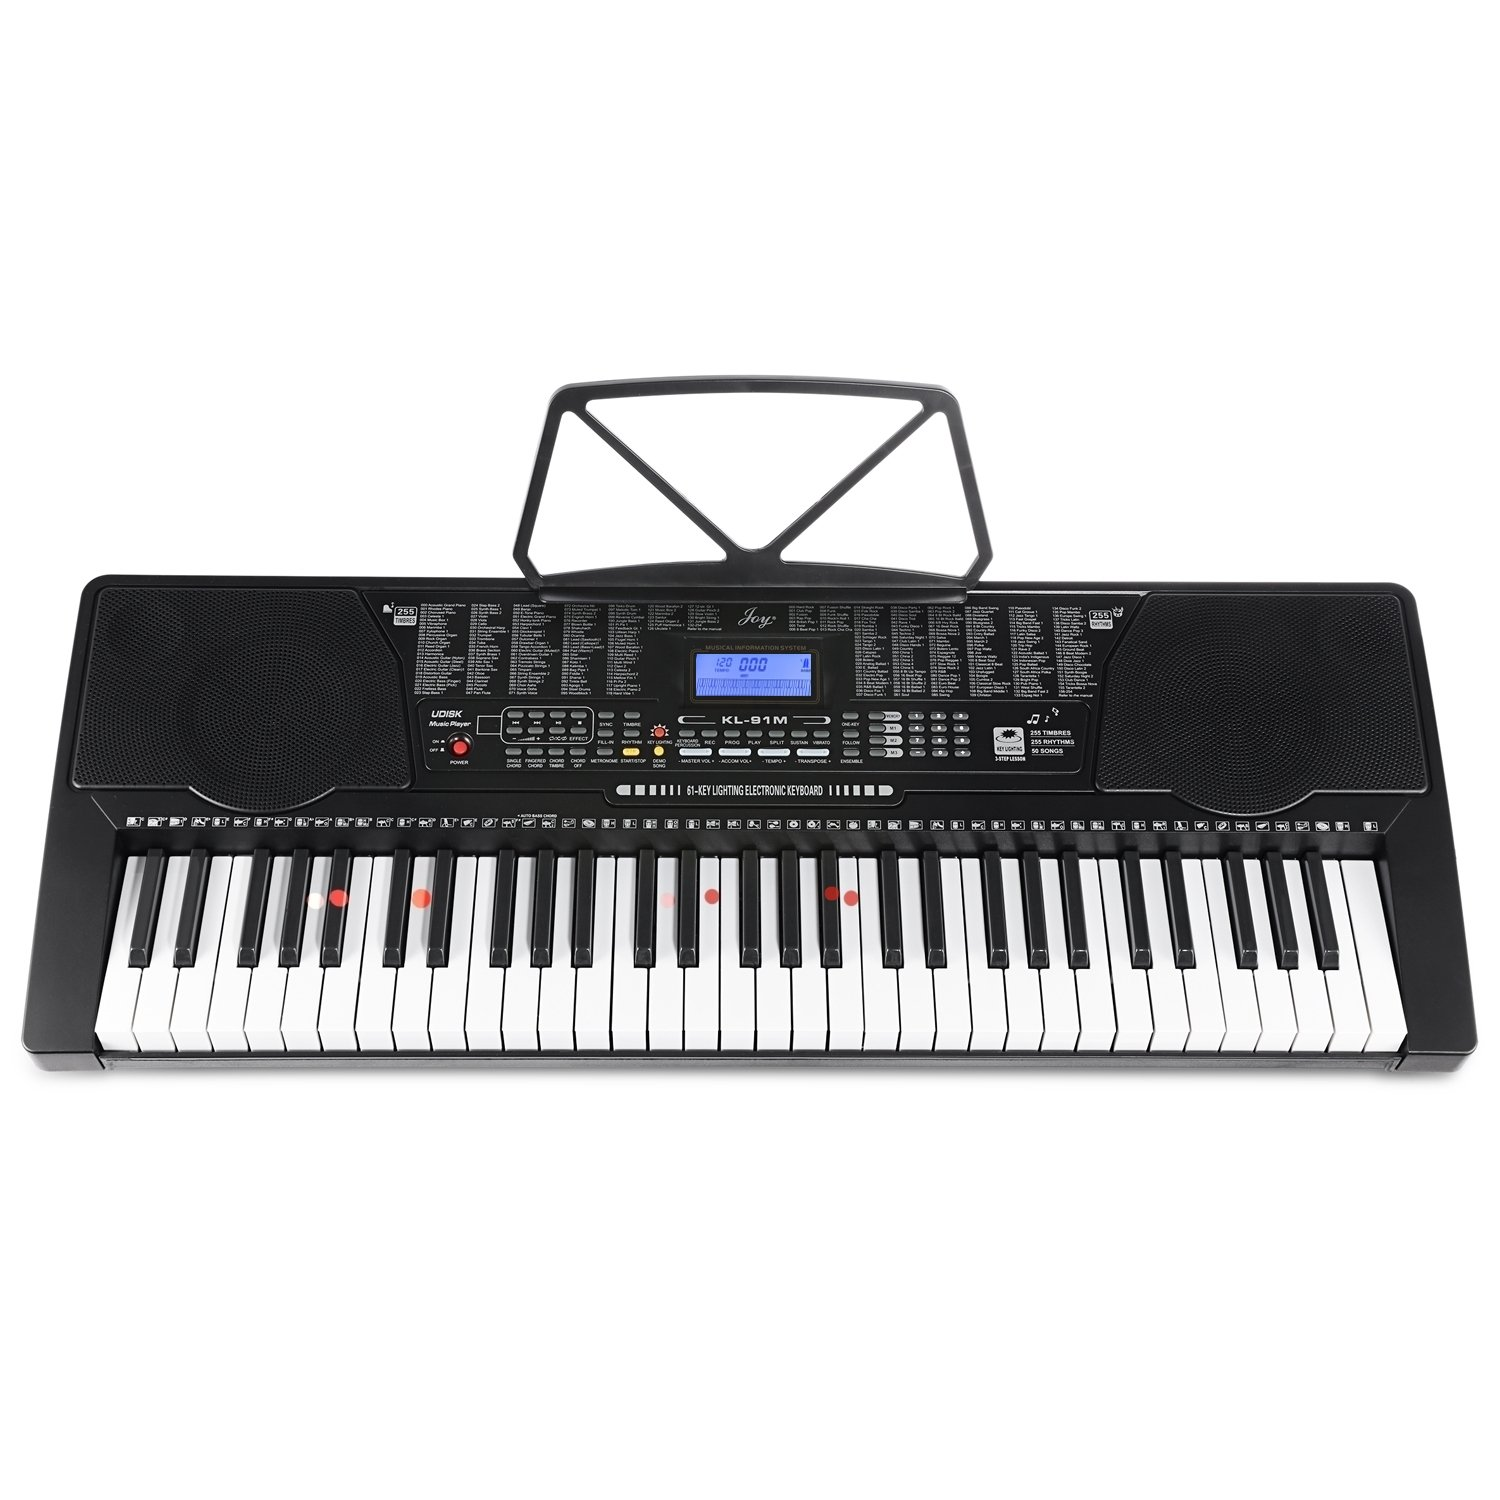 Joy 61-Key Lighting Keyboard with USB Music Player Function, Including Headphone, Stand & Stool (Kl-91MKit) by Joy (Image #2)